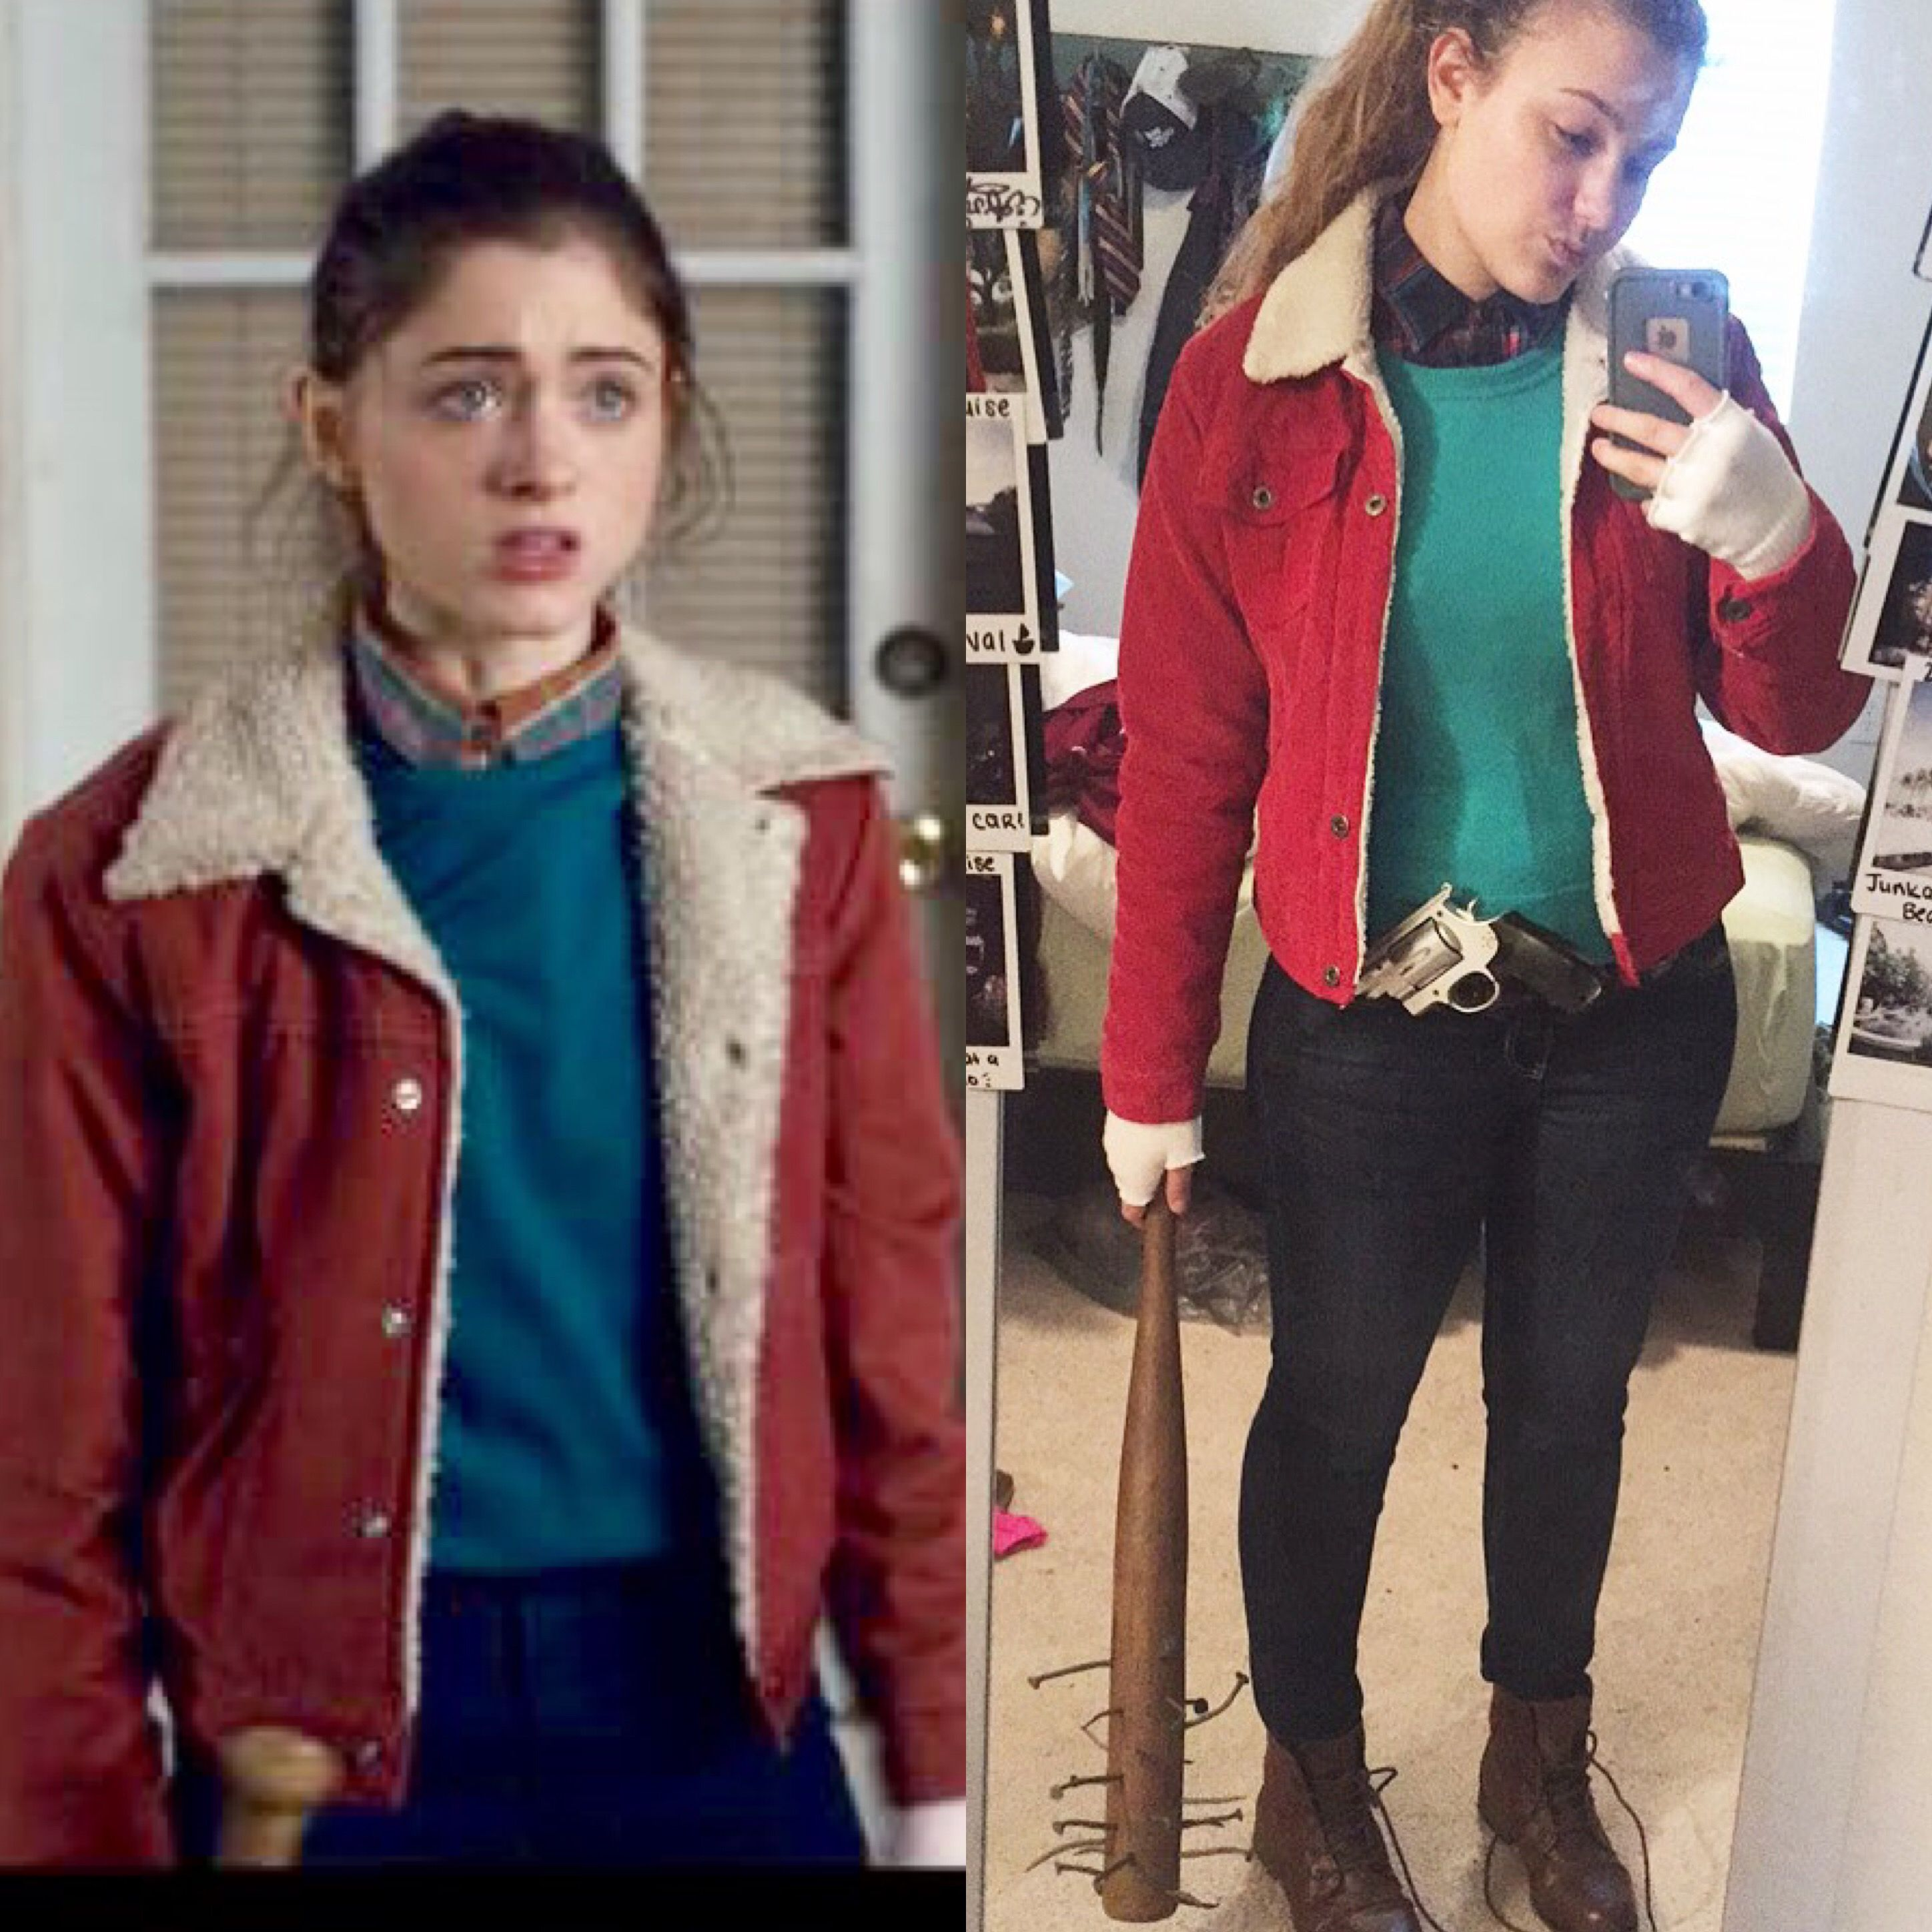 My nancy wheeler cosplay from stranger things complete with steveus